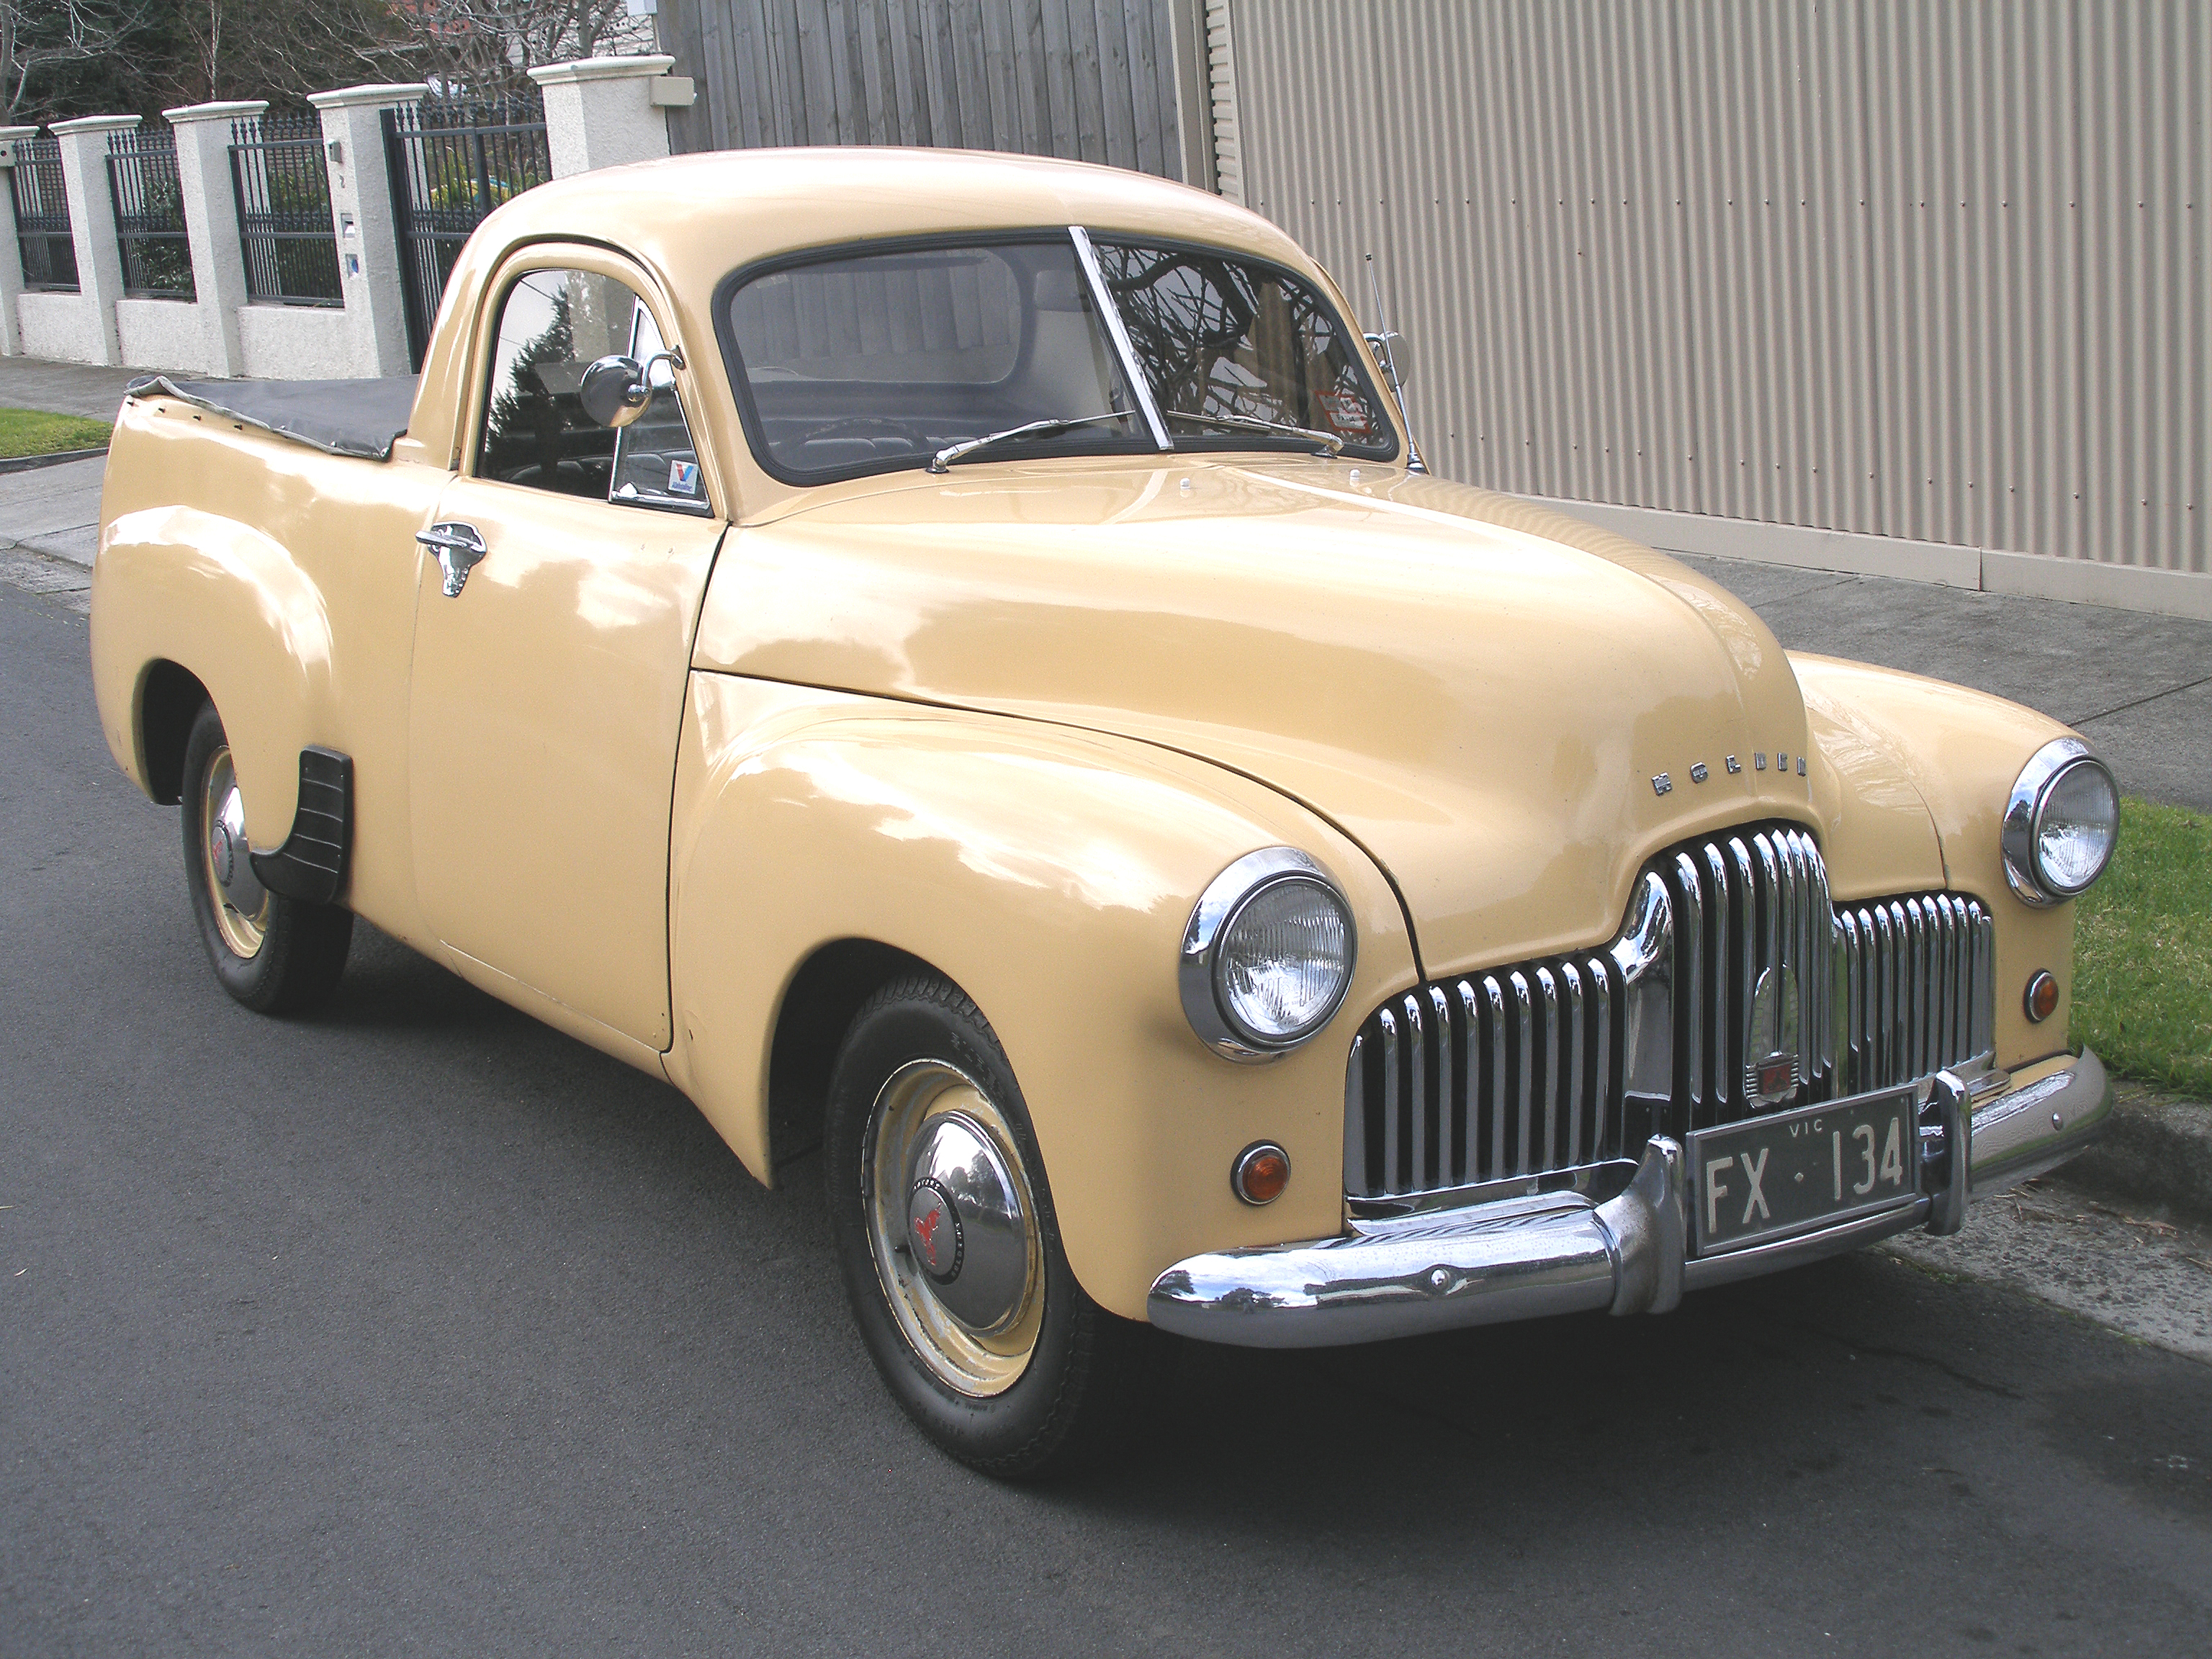 File:1951-1953 Holden 50-2106 01.jpg - Wikimedia Commons